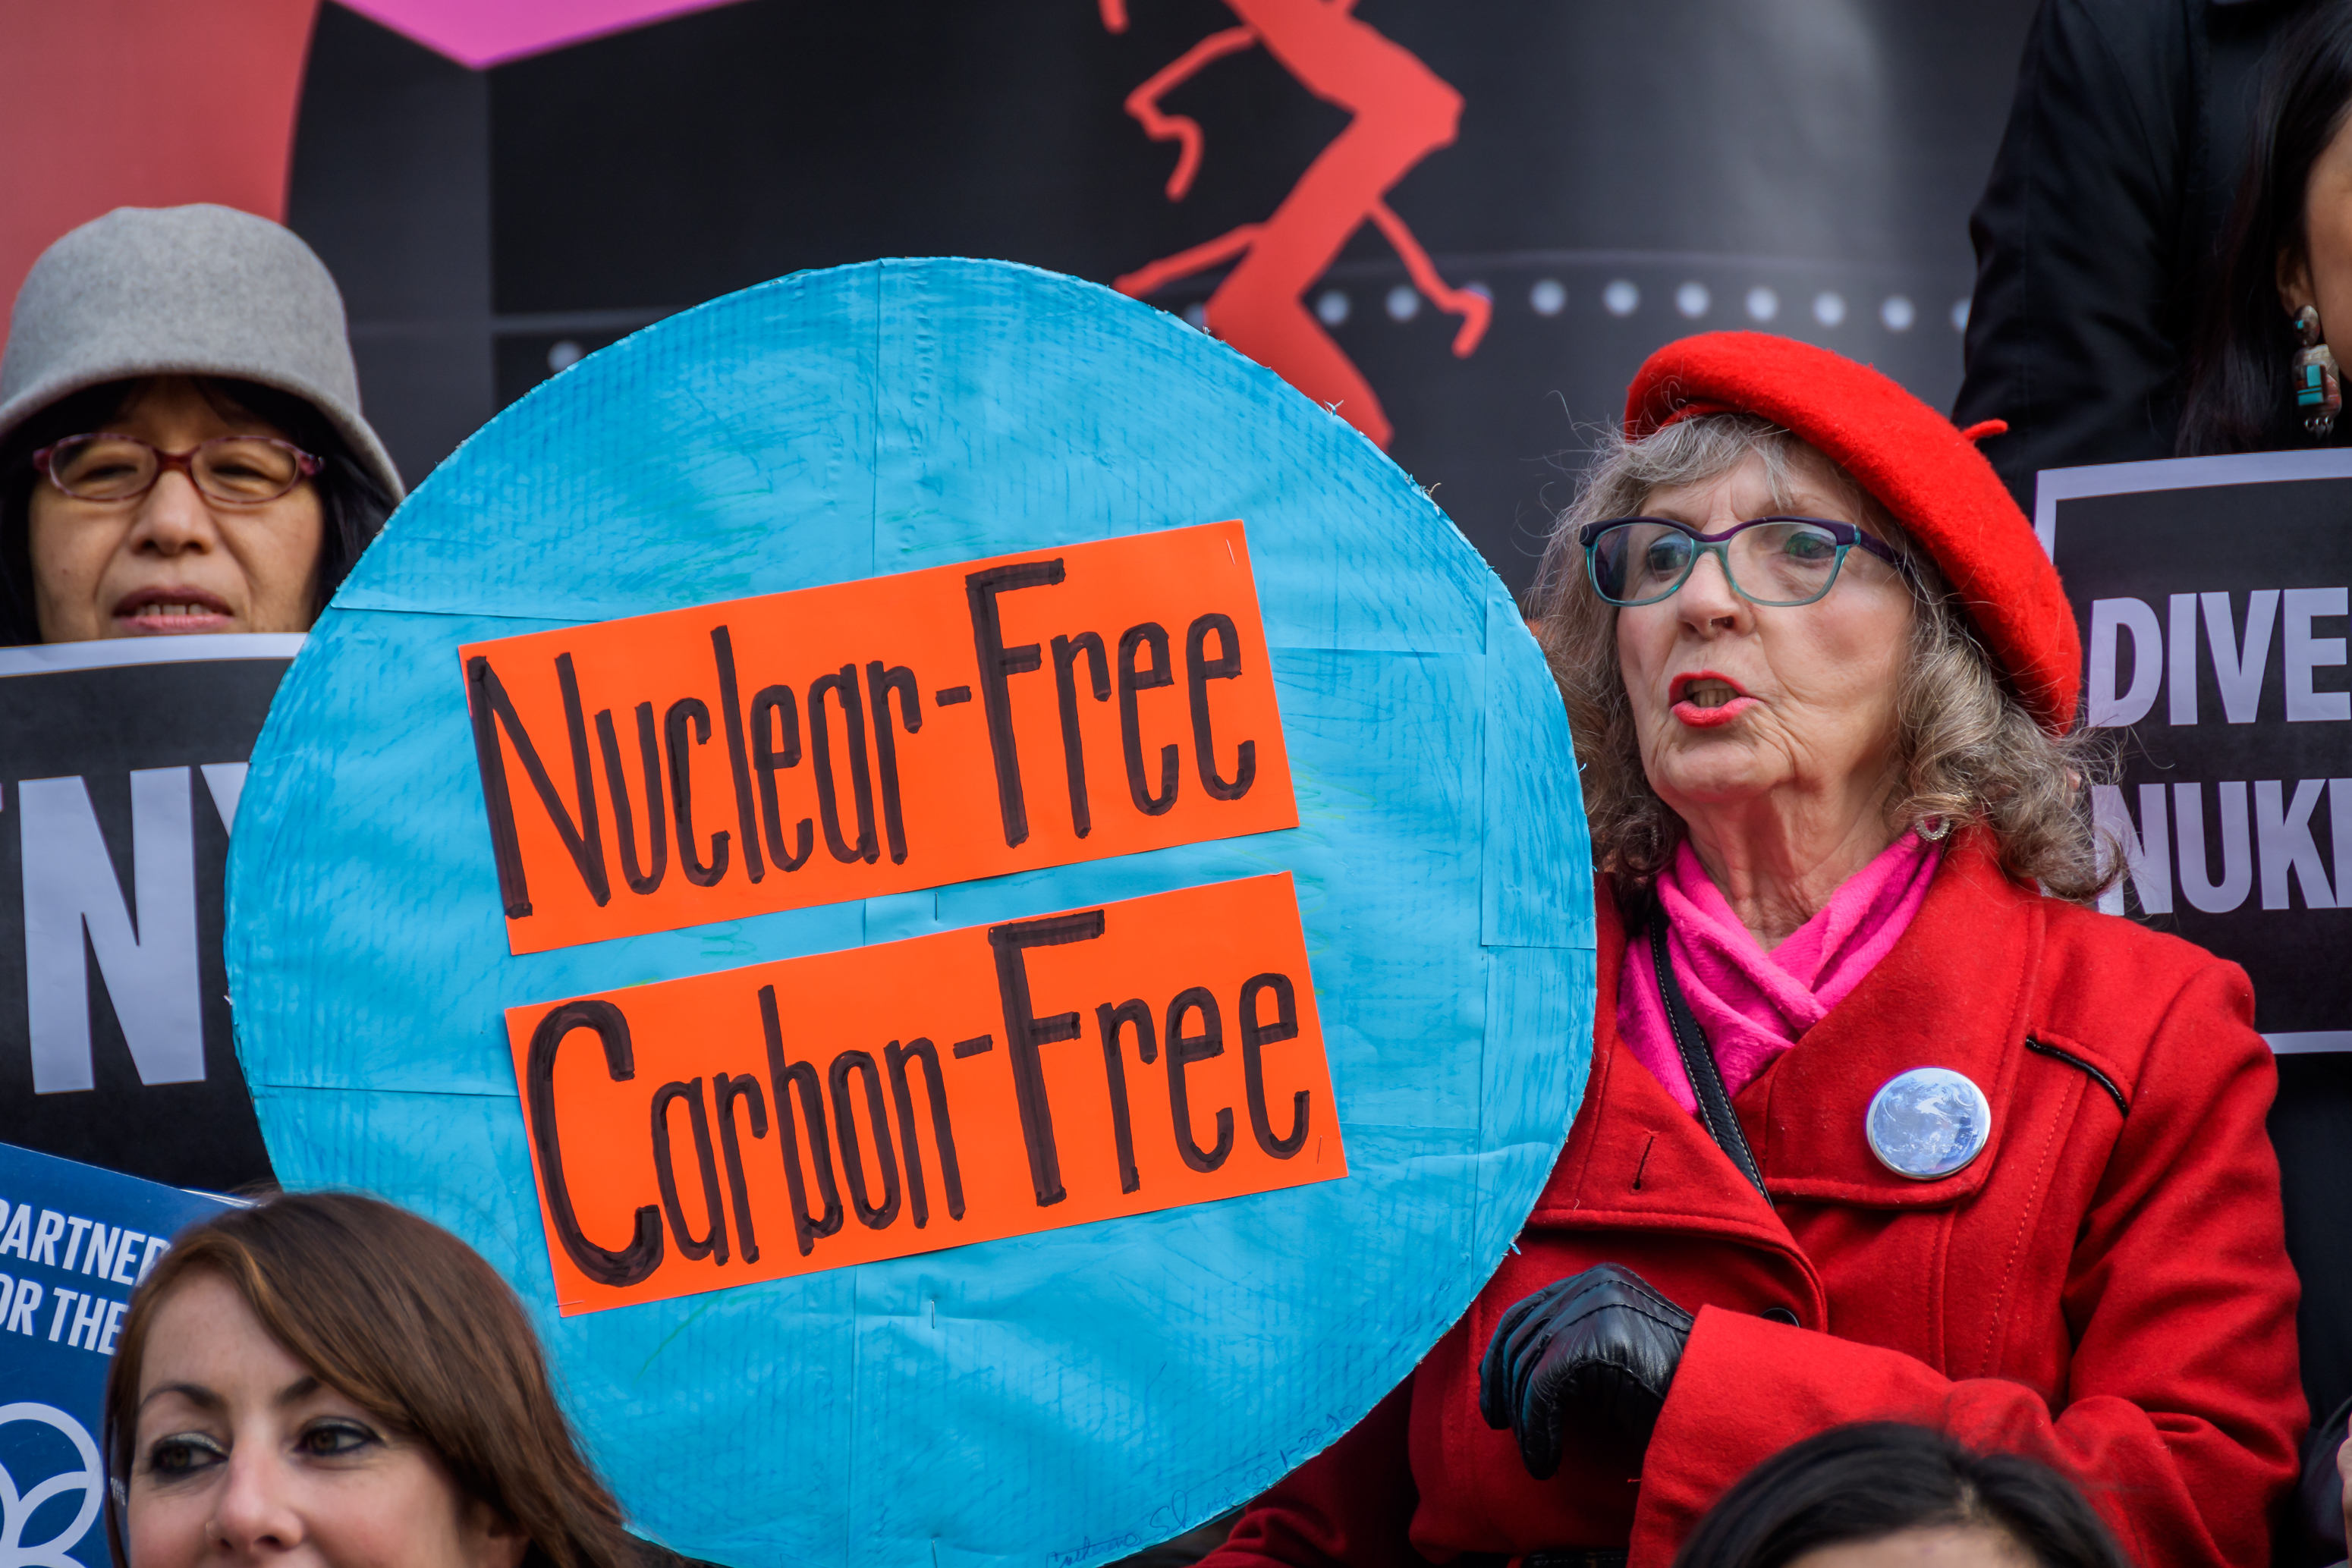 Activists and advocates seeking to abolish nuclear weapons...